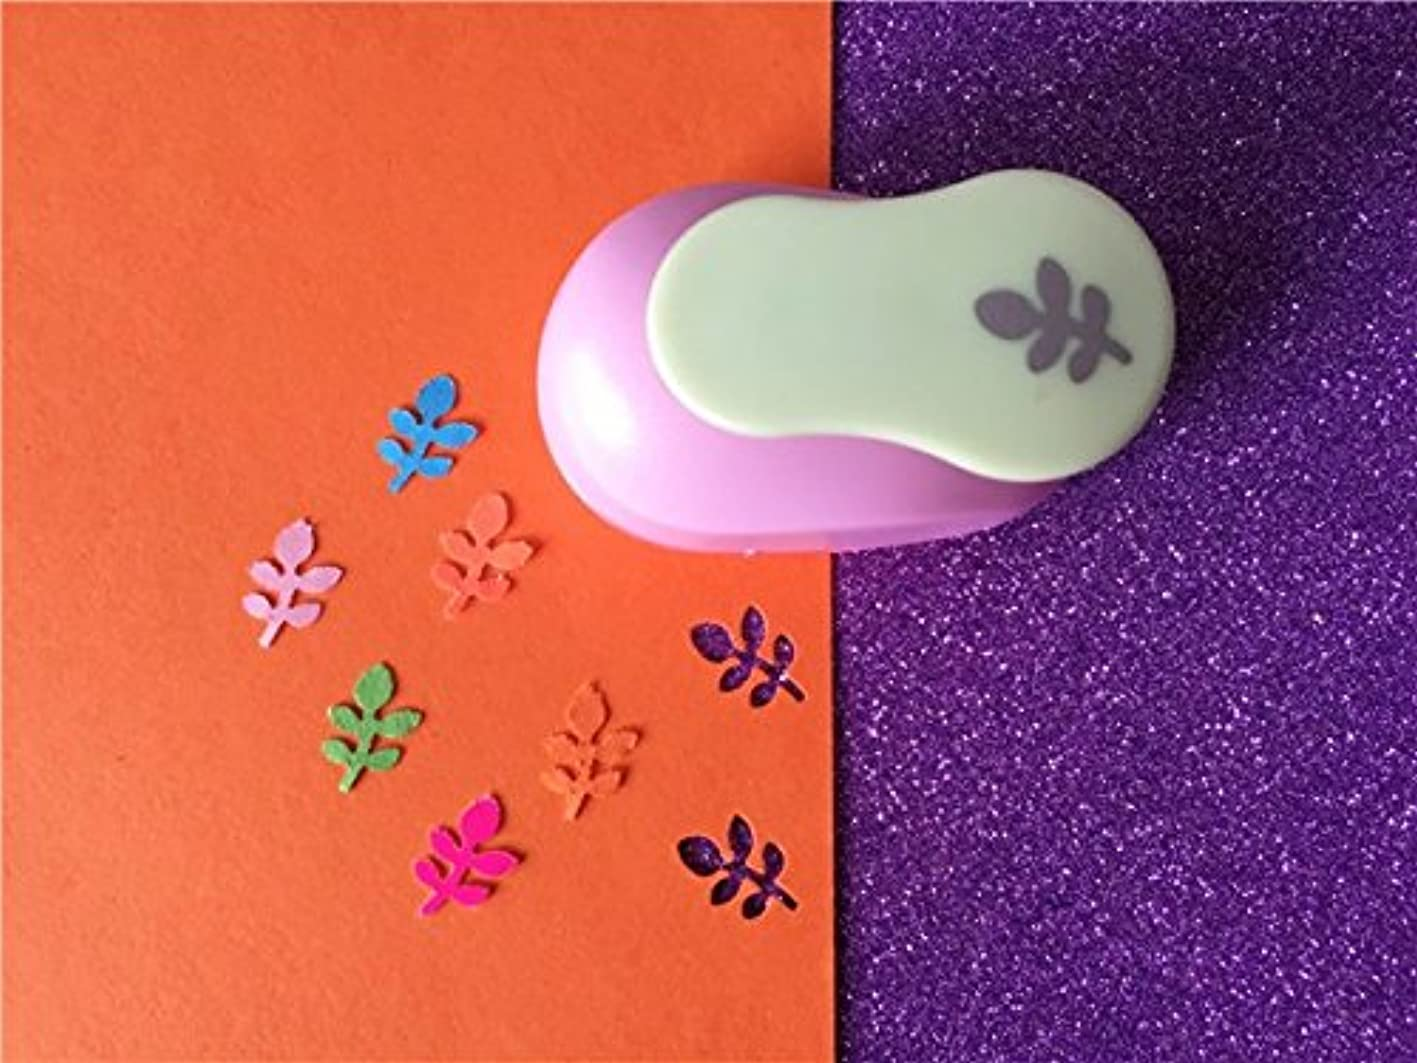 Fascola 5/8'' Paper Craft Punch,card Scrapbooking Engraving Kid Cut DIY Handmade Hole Puncher (Leaves) nocbirgxrcl411